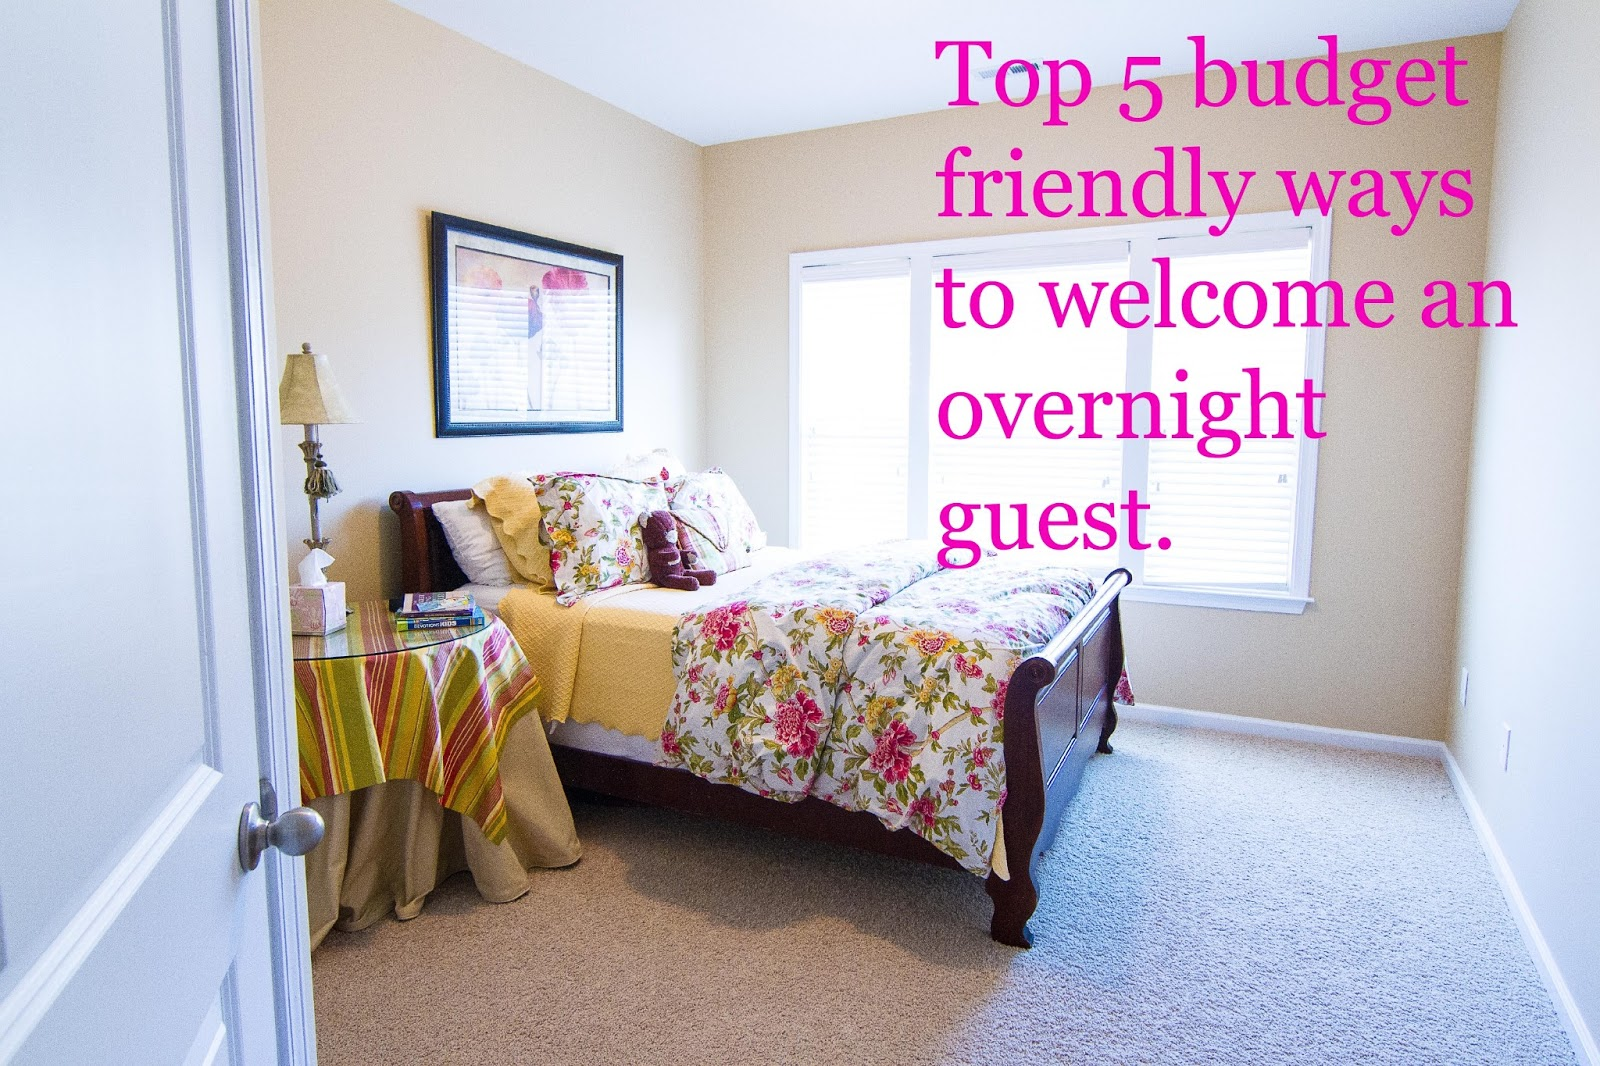 Top 5 Budget Friendly Ways To Make Your Guest Feel Welcome!